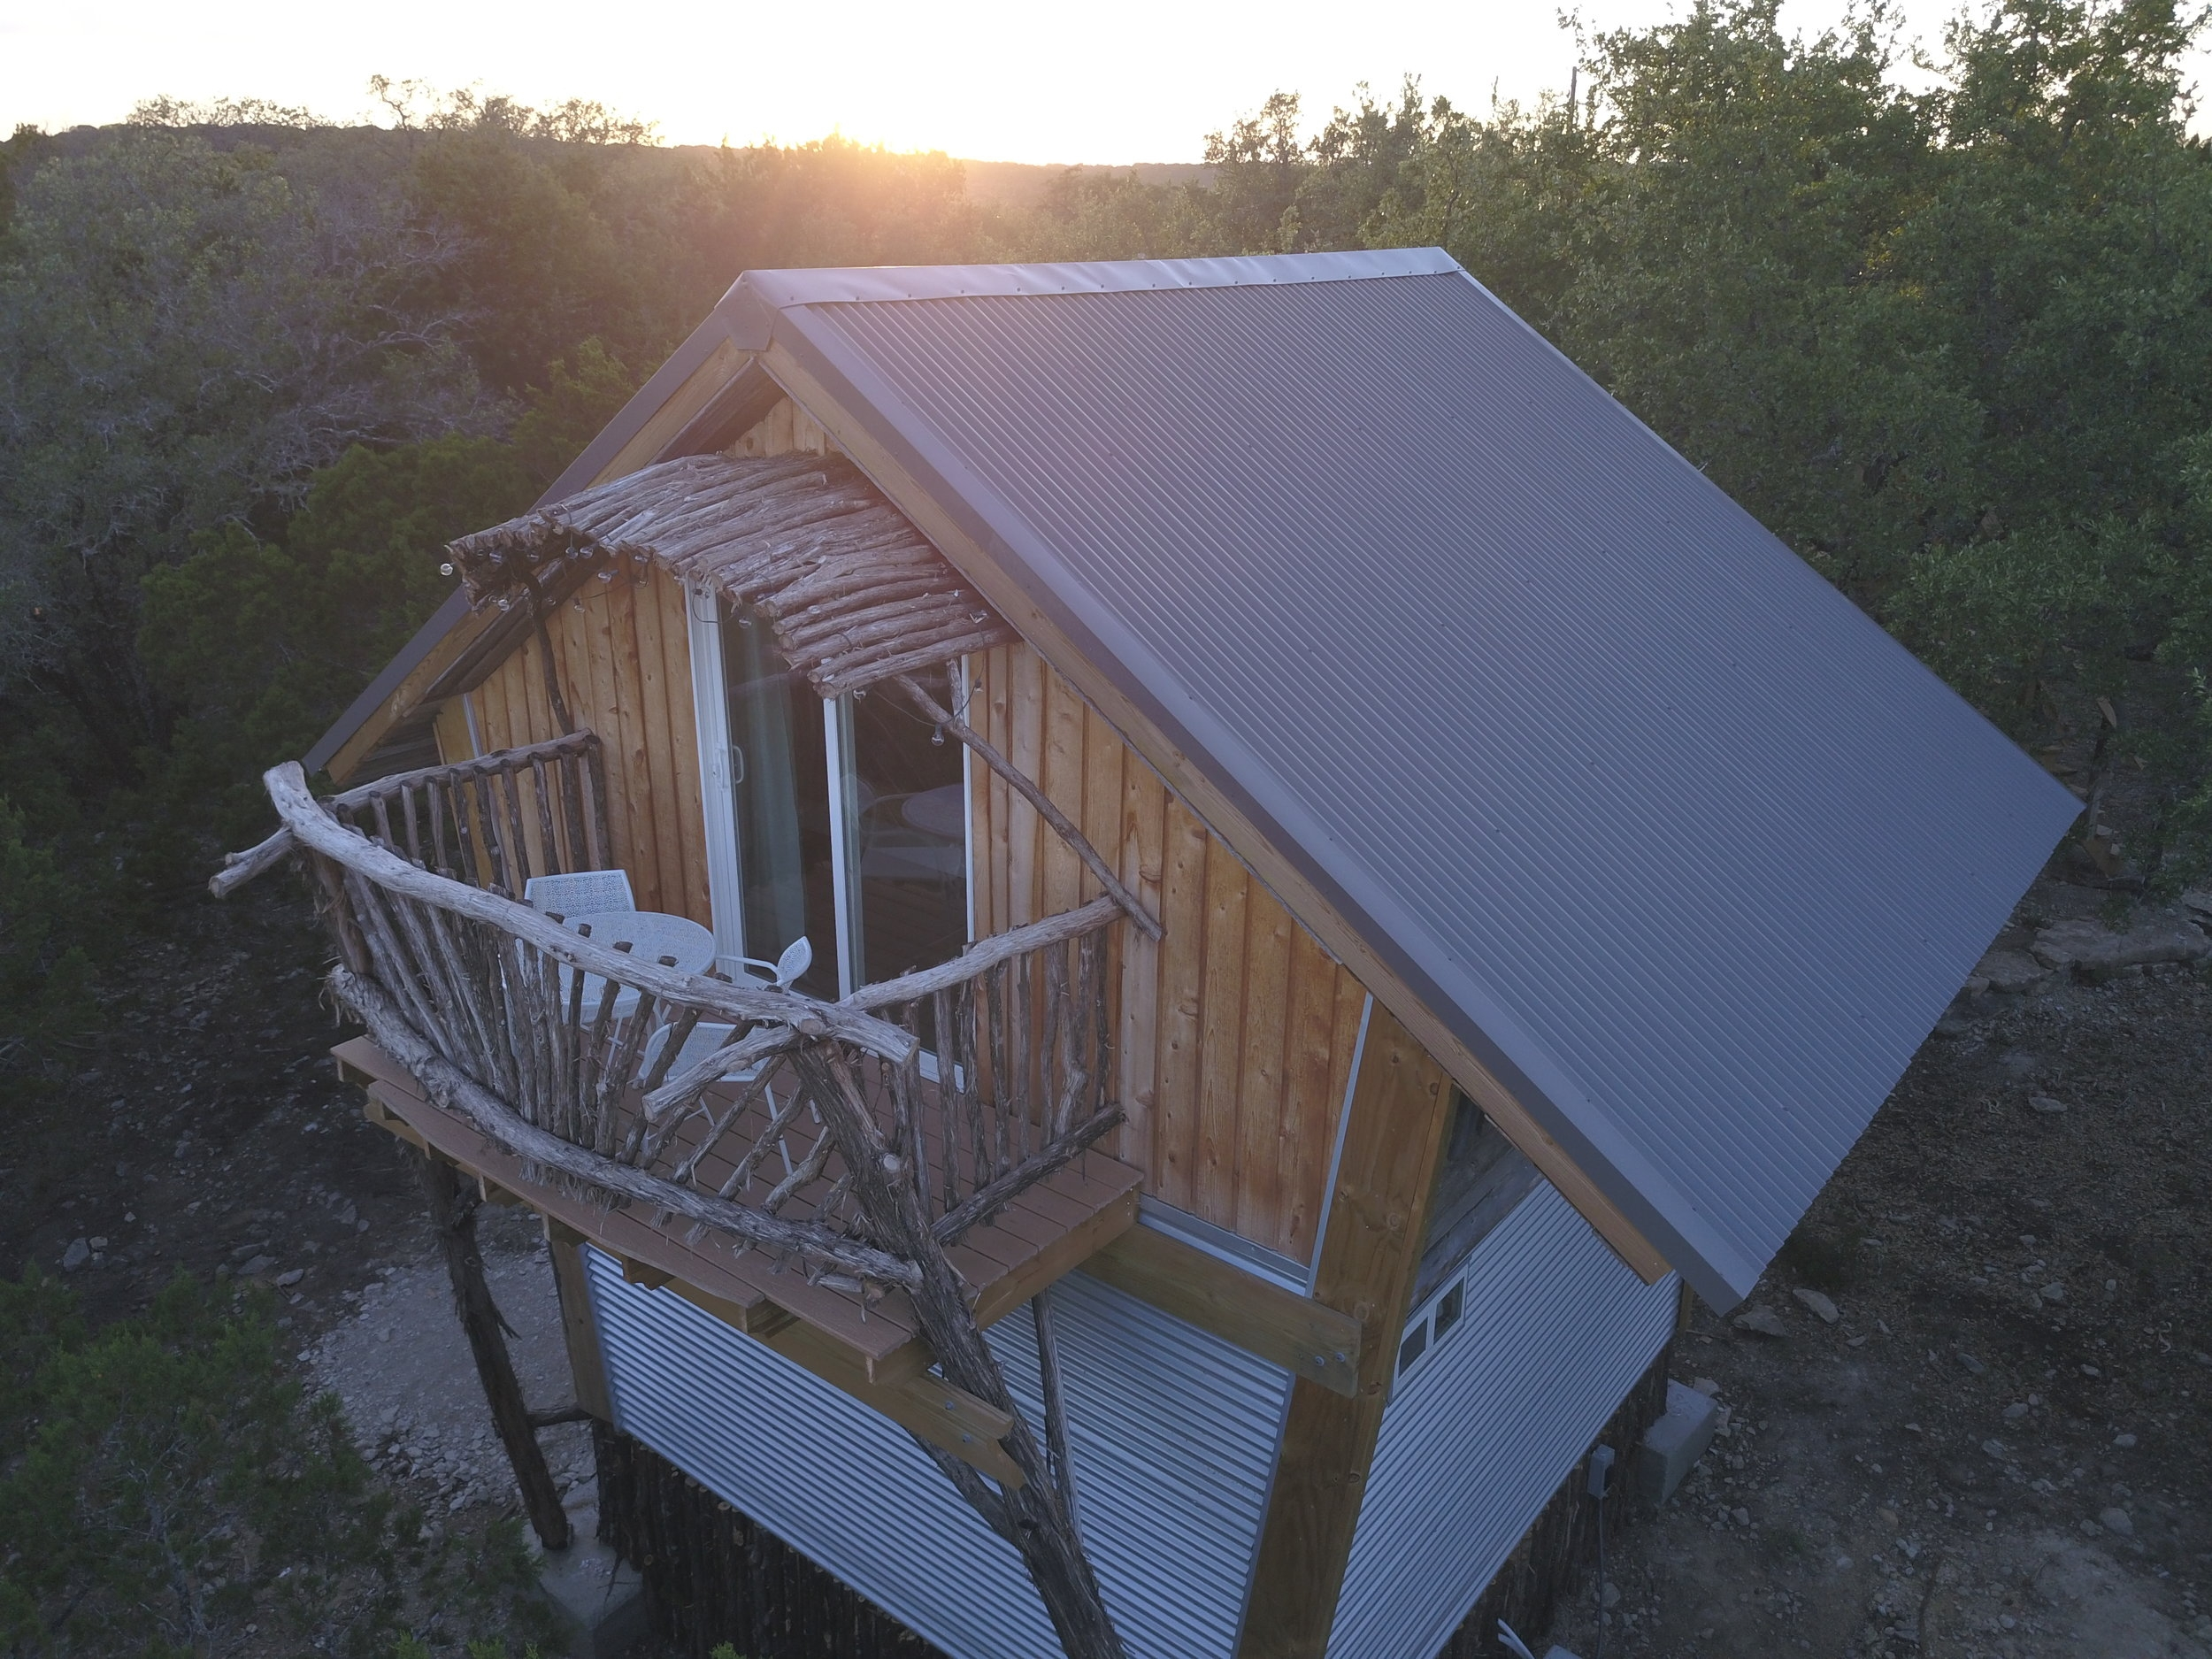 The Birdhouse - Our first tree house cabin